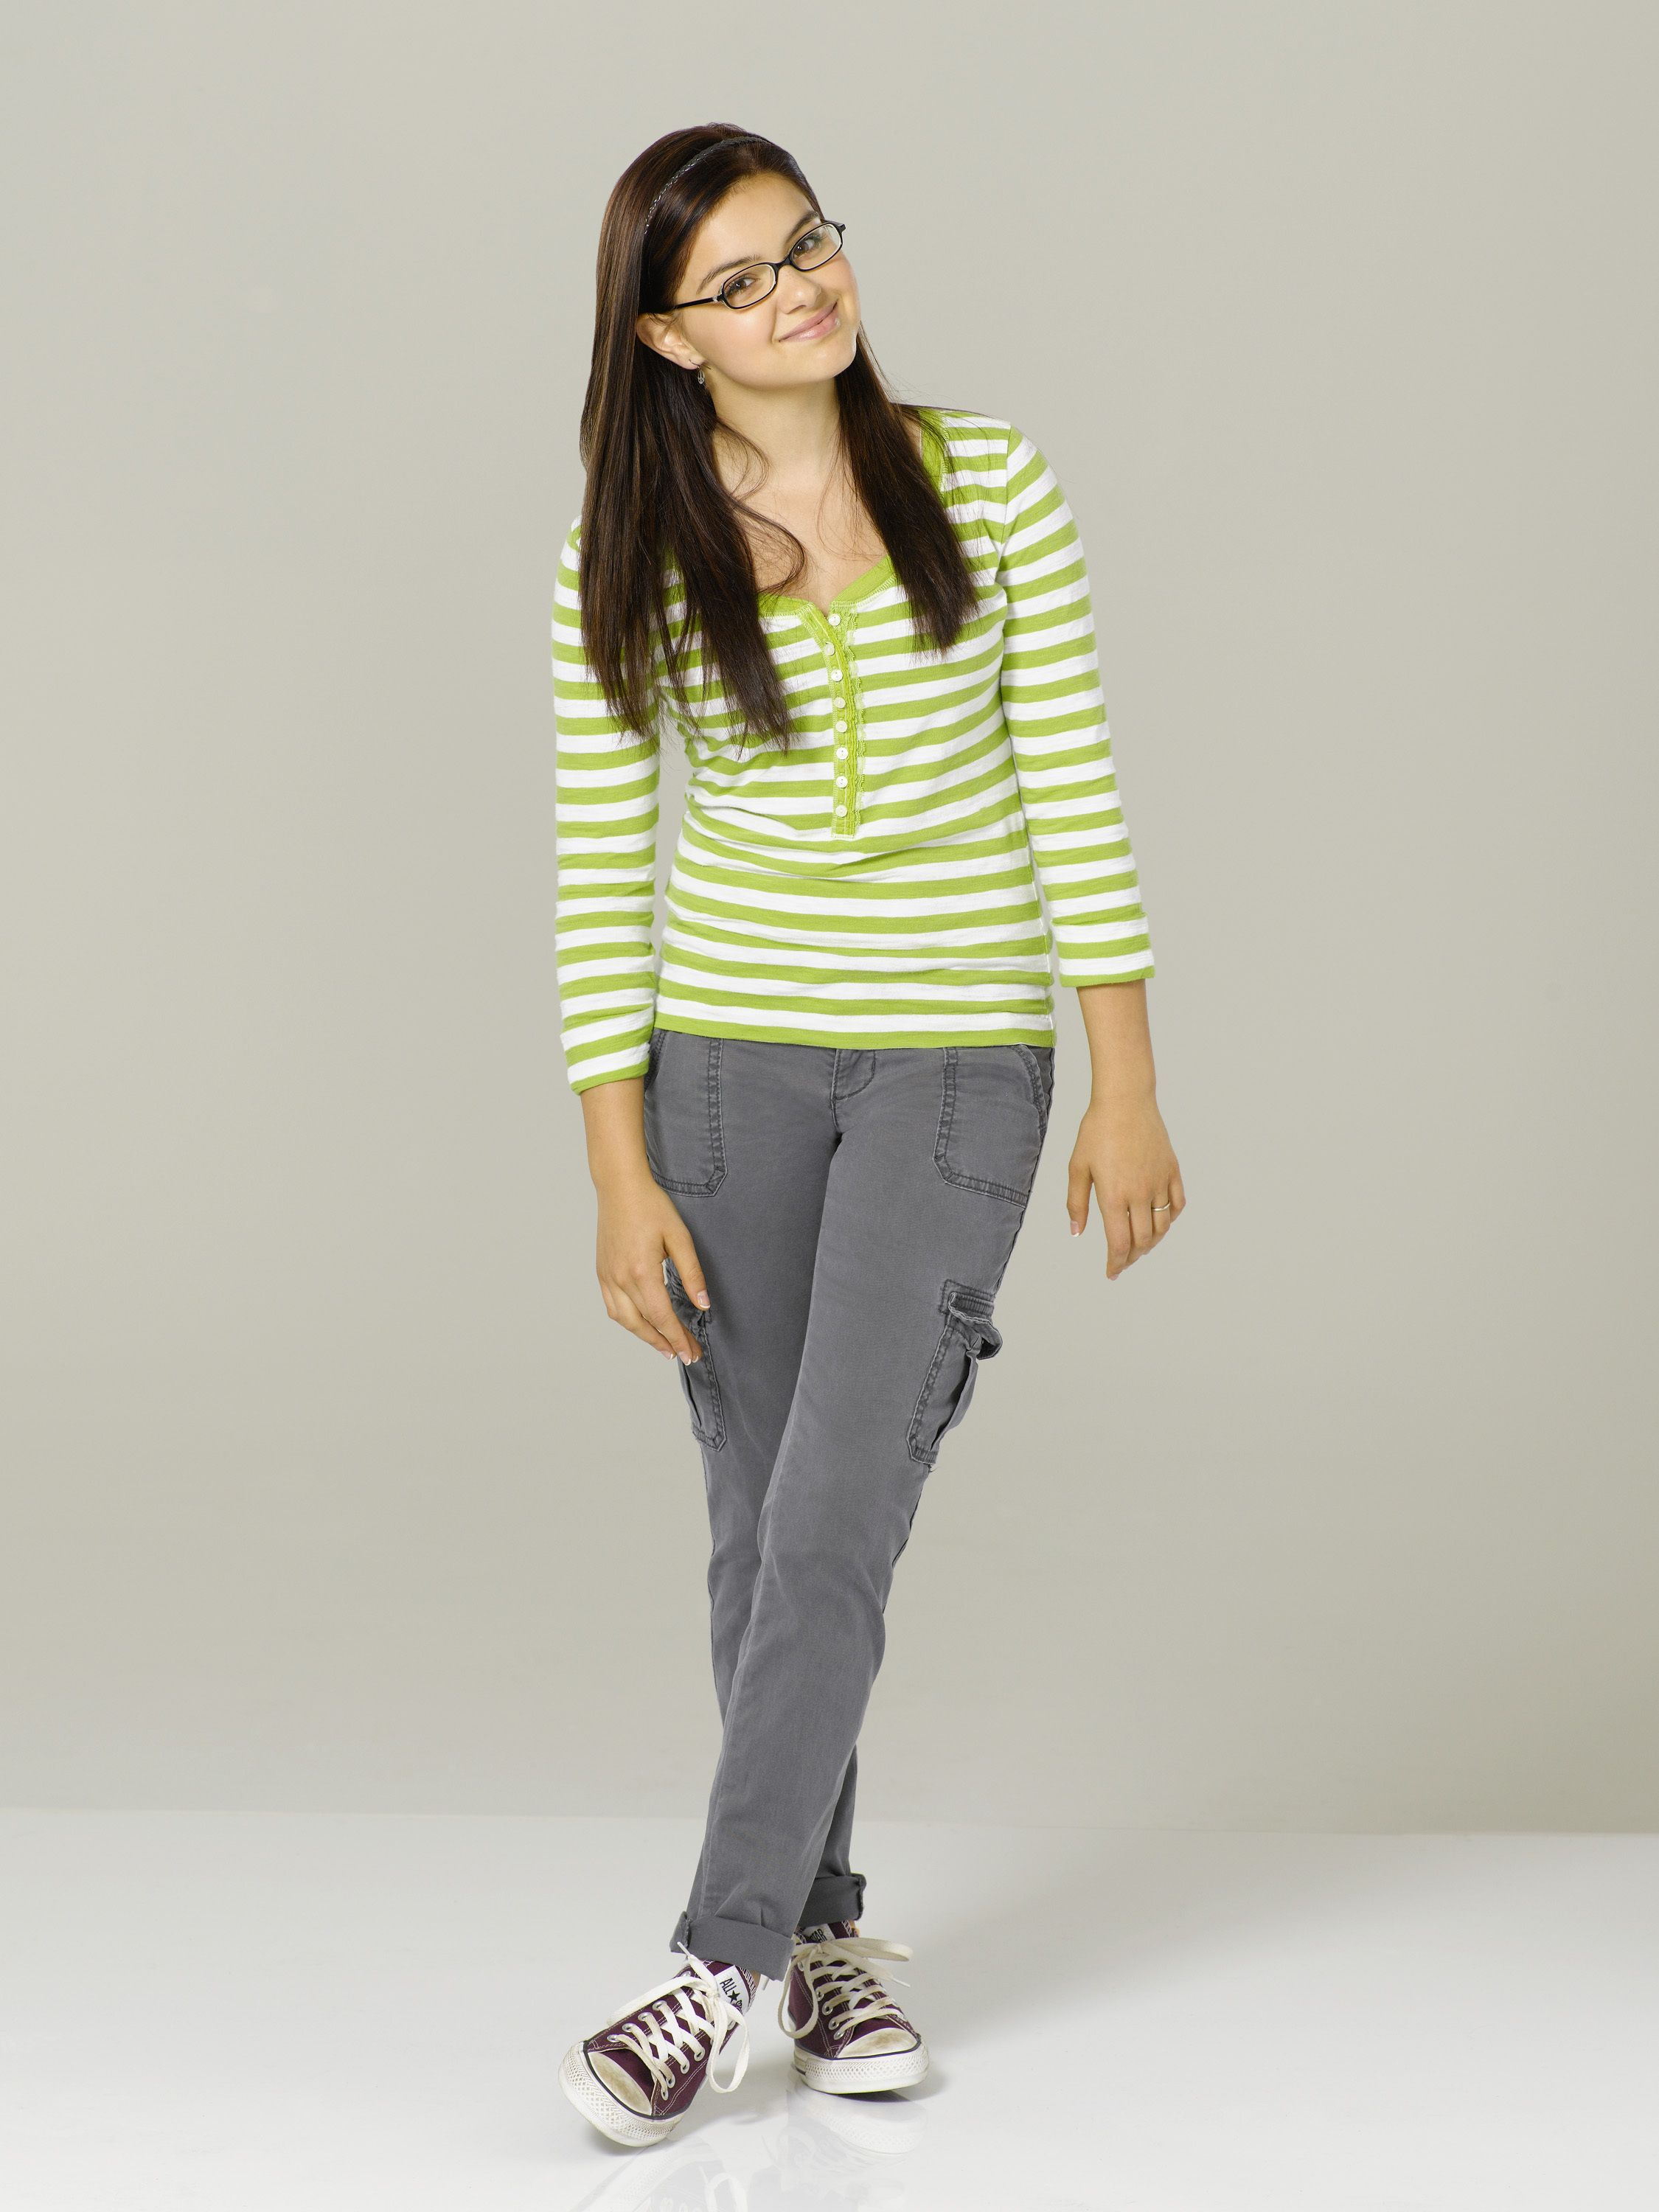 Modern Family Season 3 Promo Ariel Winter Modern Family Alex Modern Family